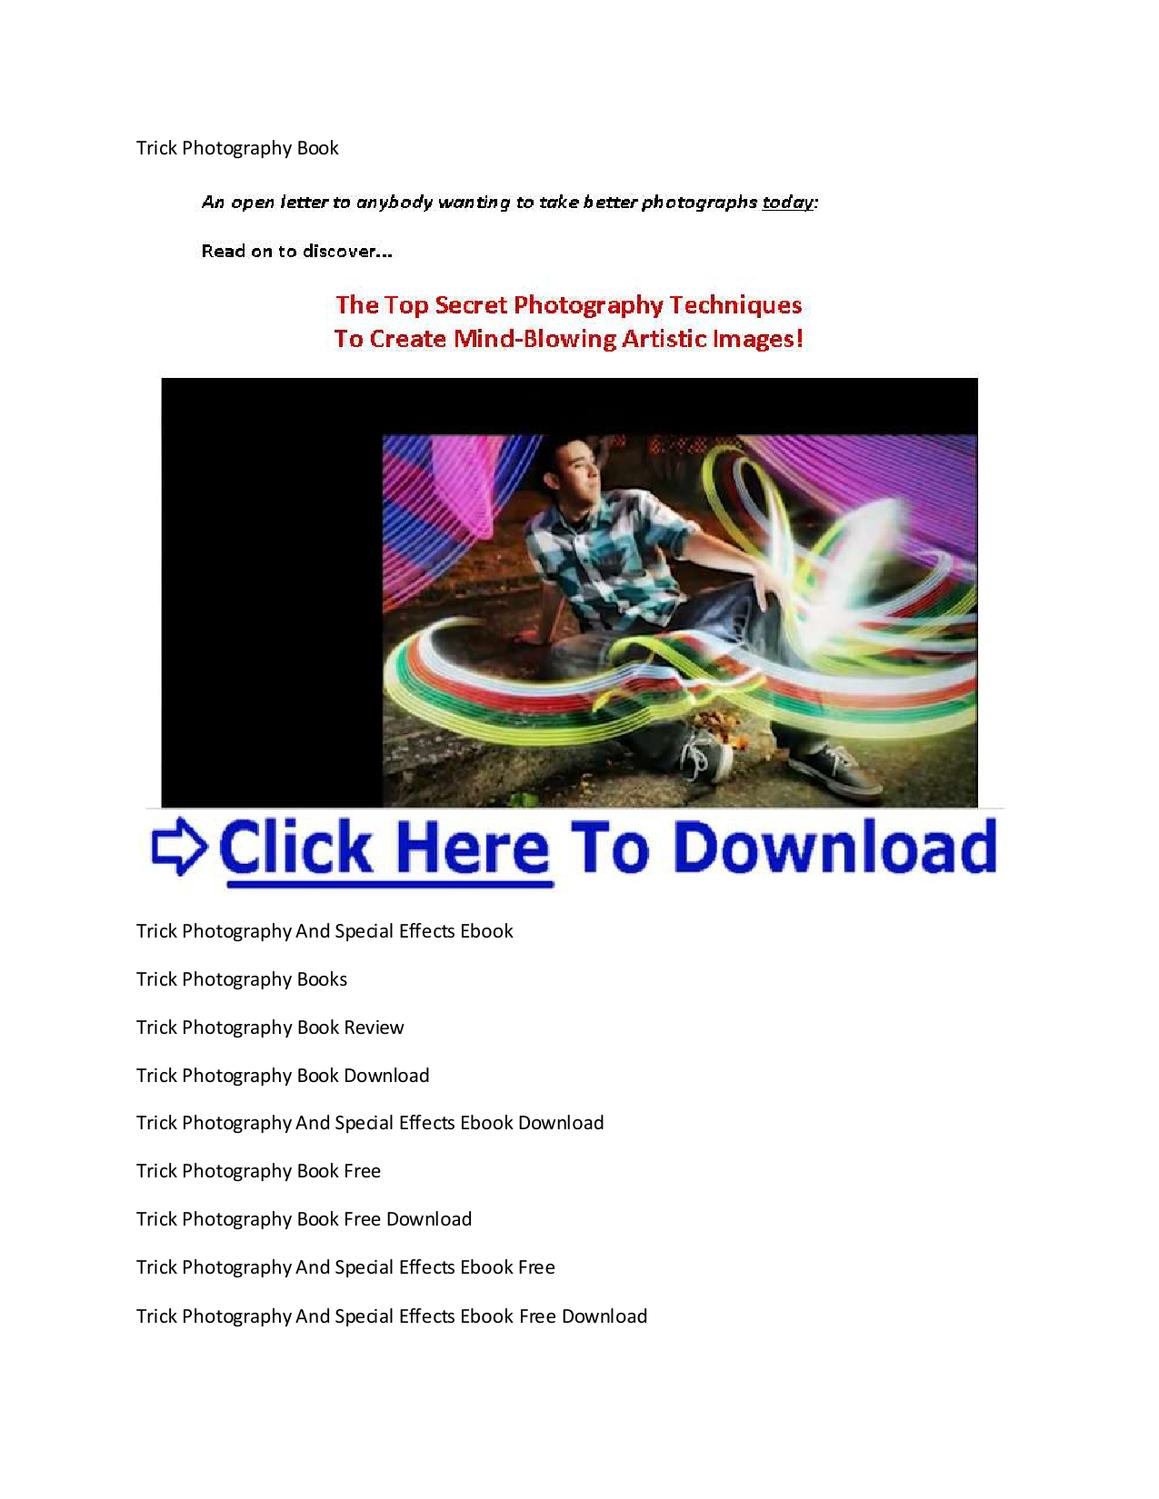 trick photography and special effects ebook free download ...